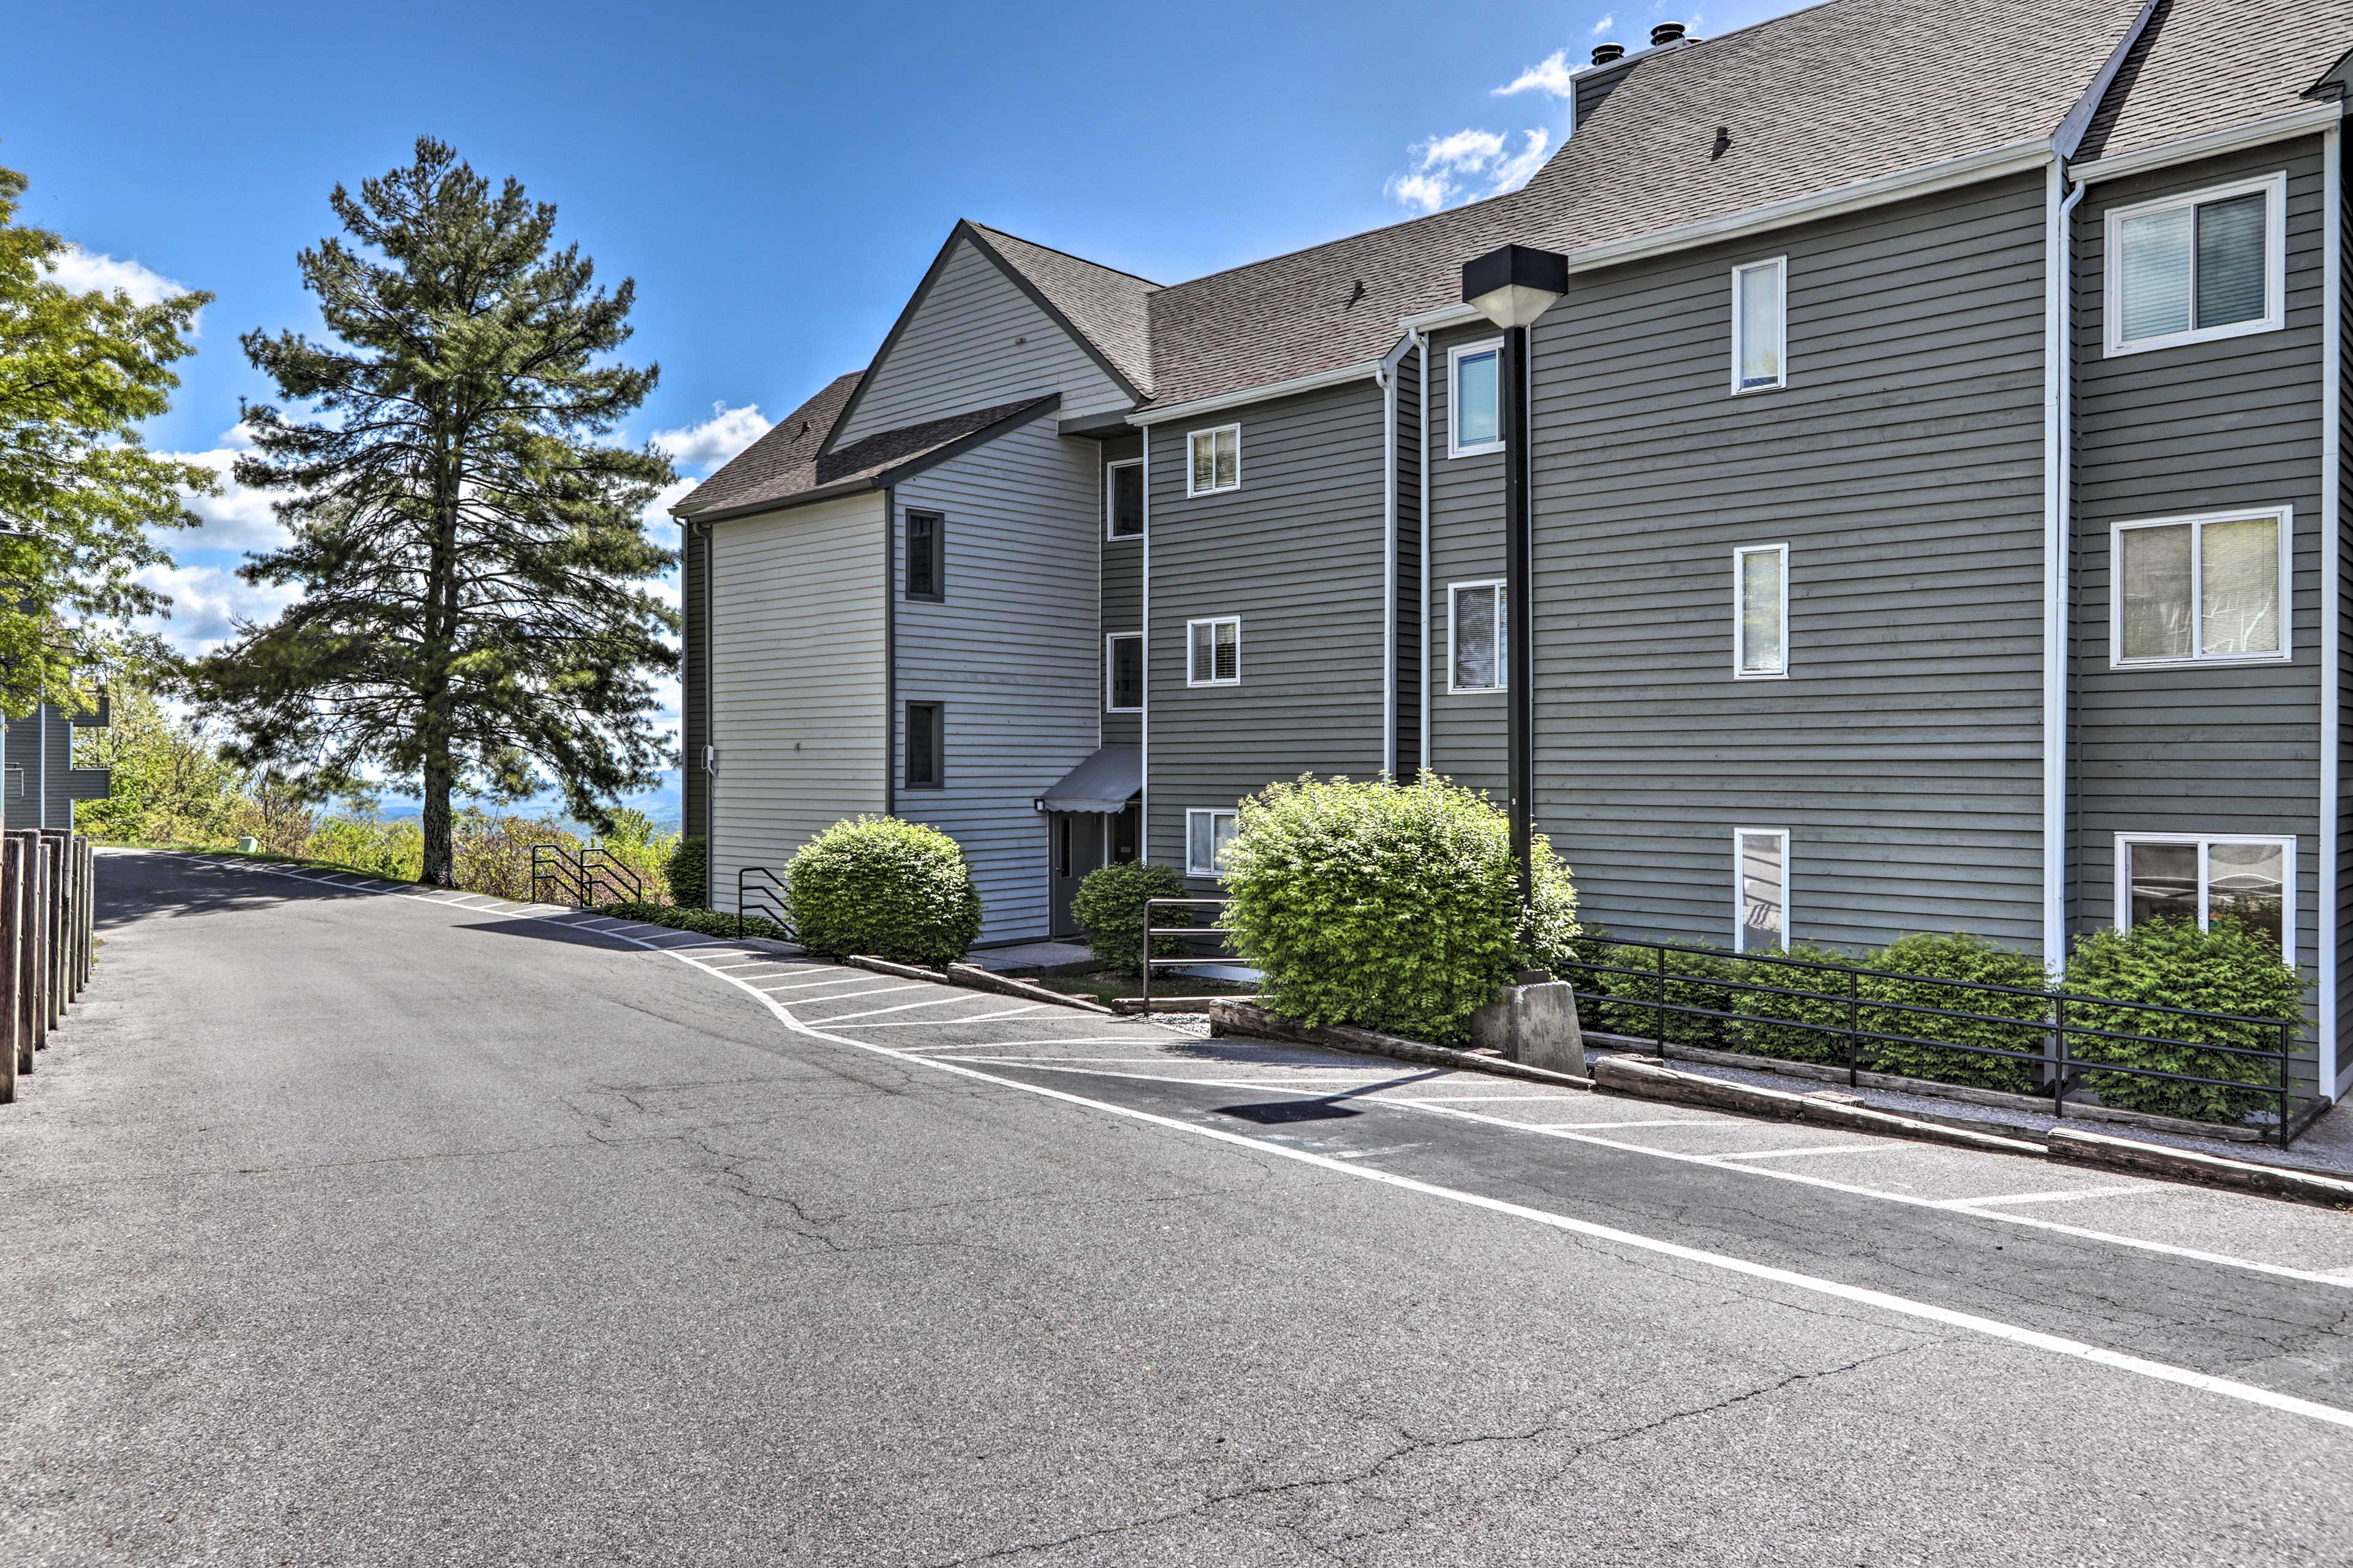 You'll have plenty of parking space in this first-come, first-served lot.